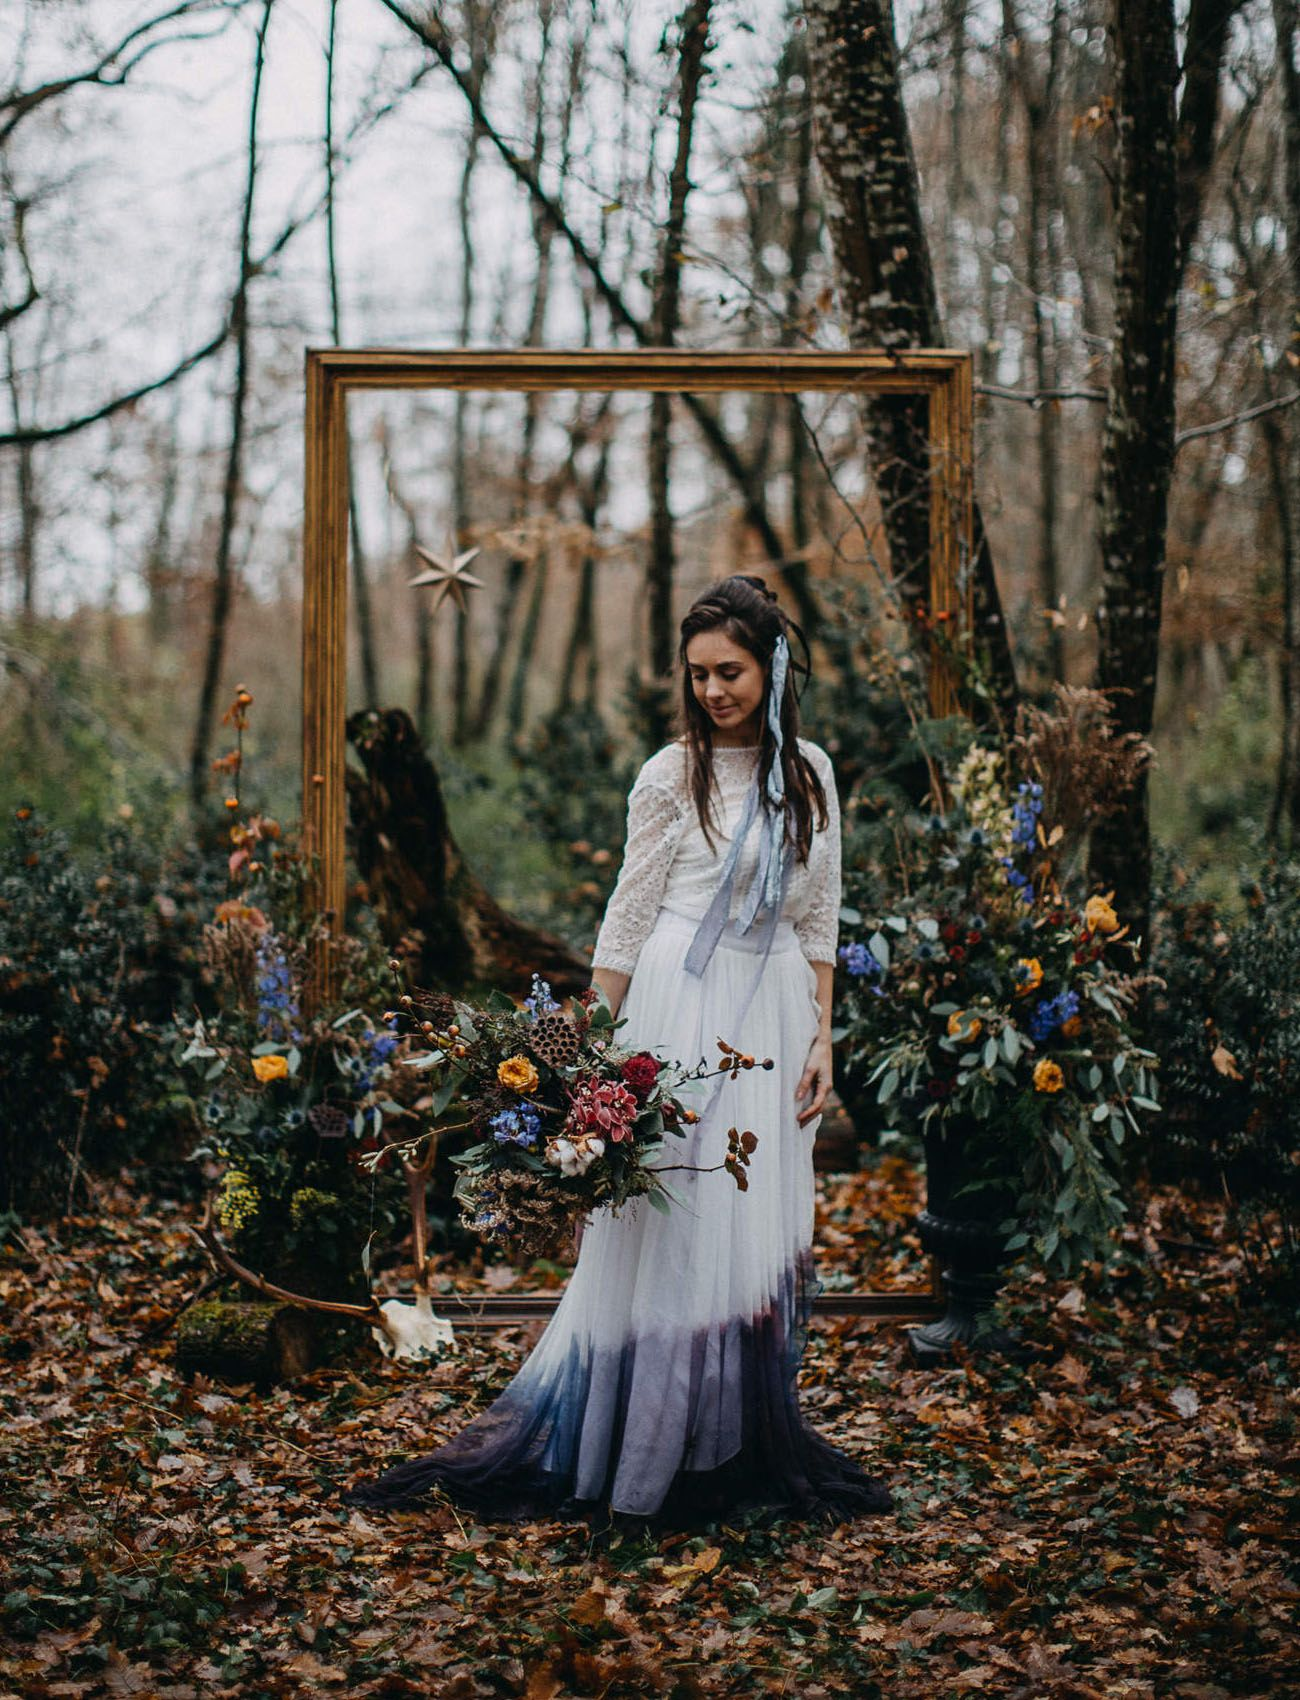 093f18ae724e Enchanting Winter Solstice Wedding Inspiration at a Stunning French ...